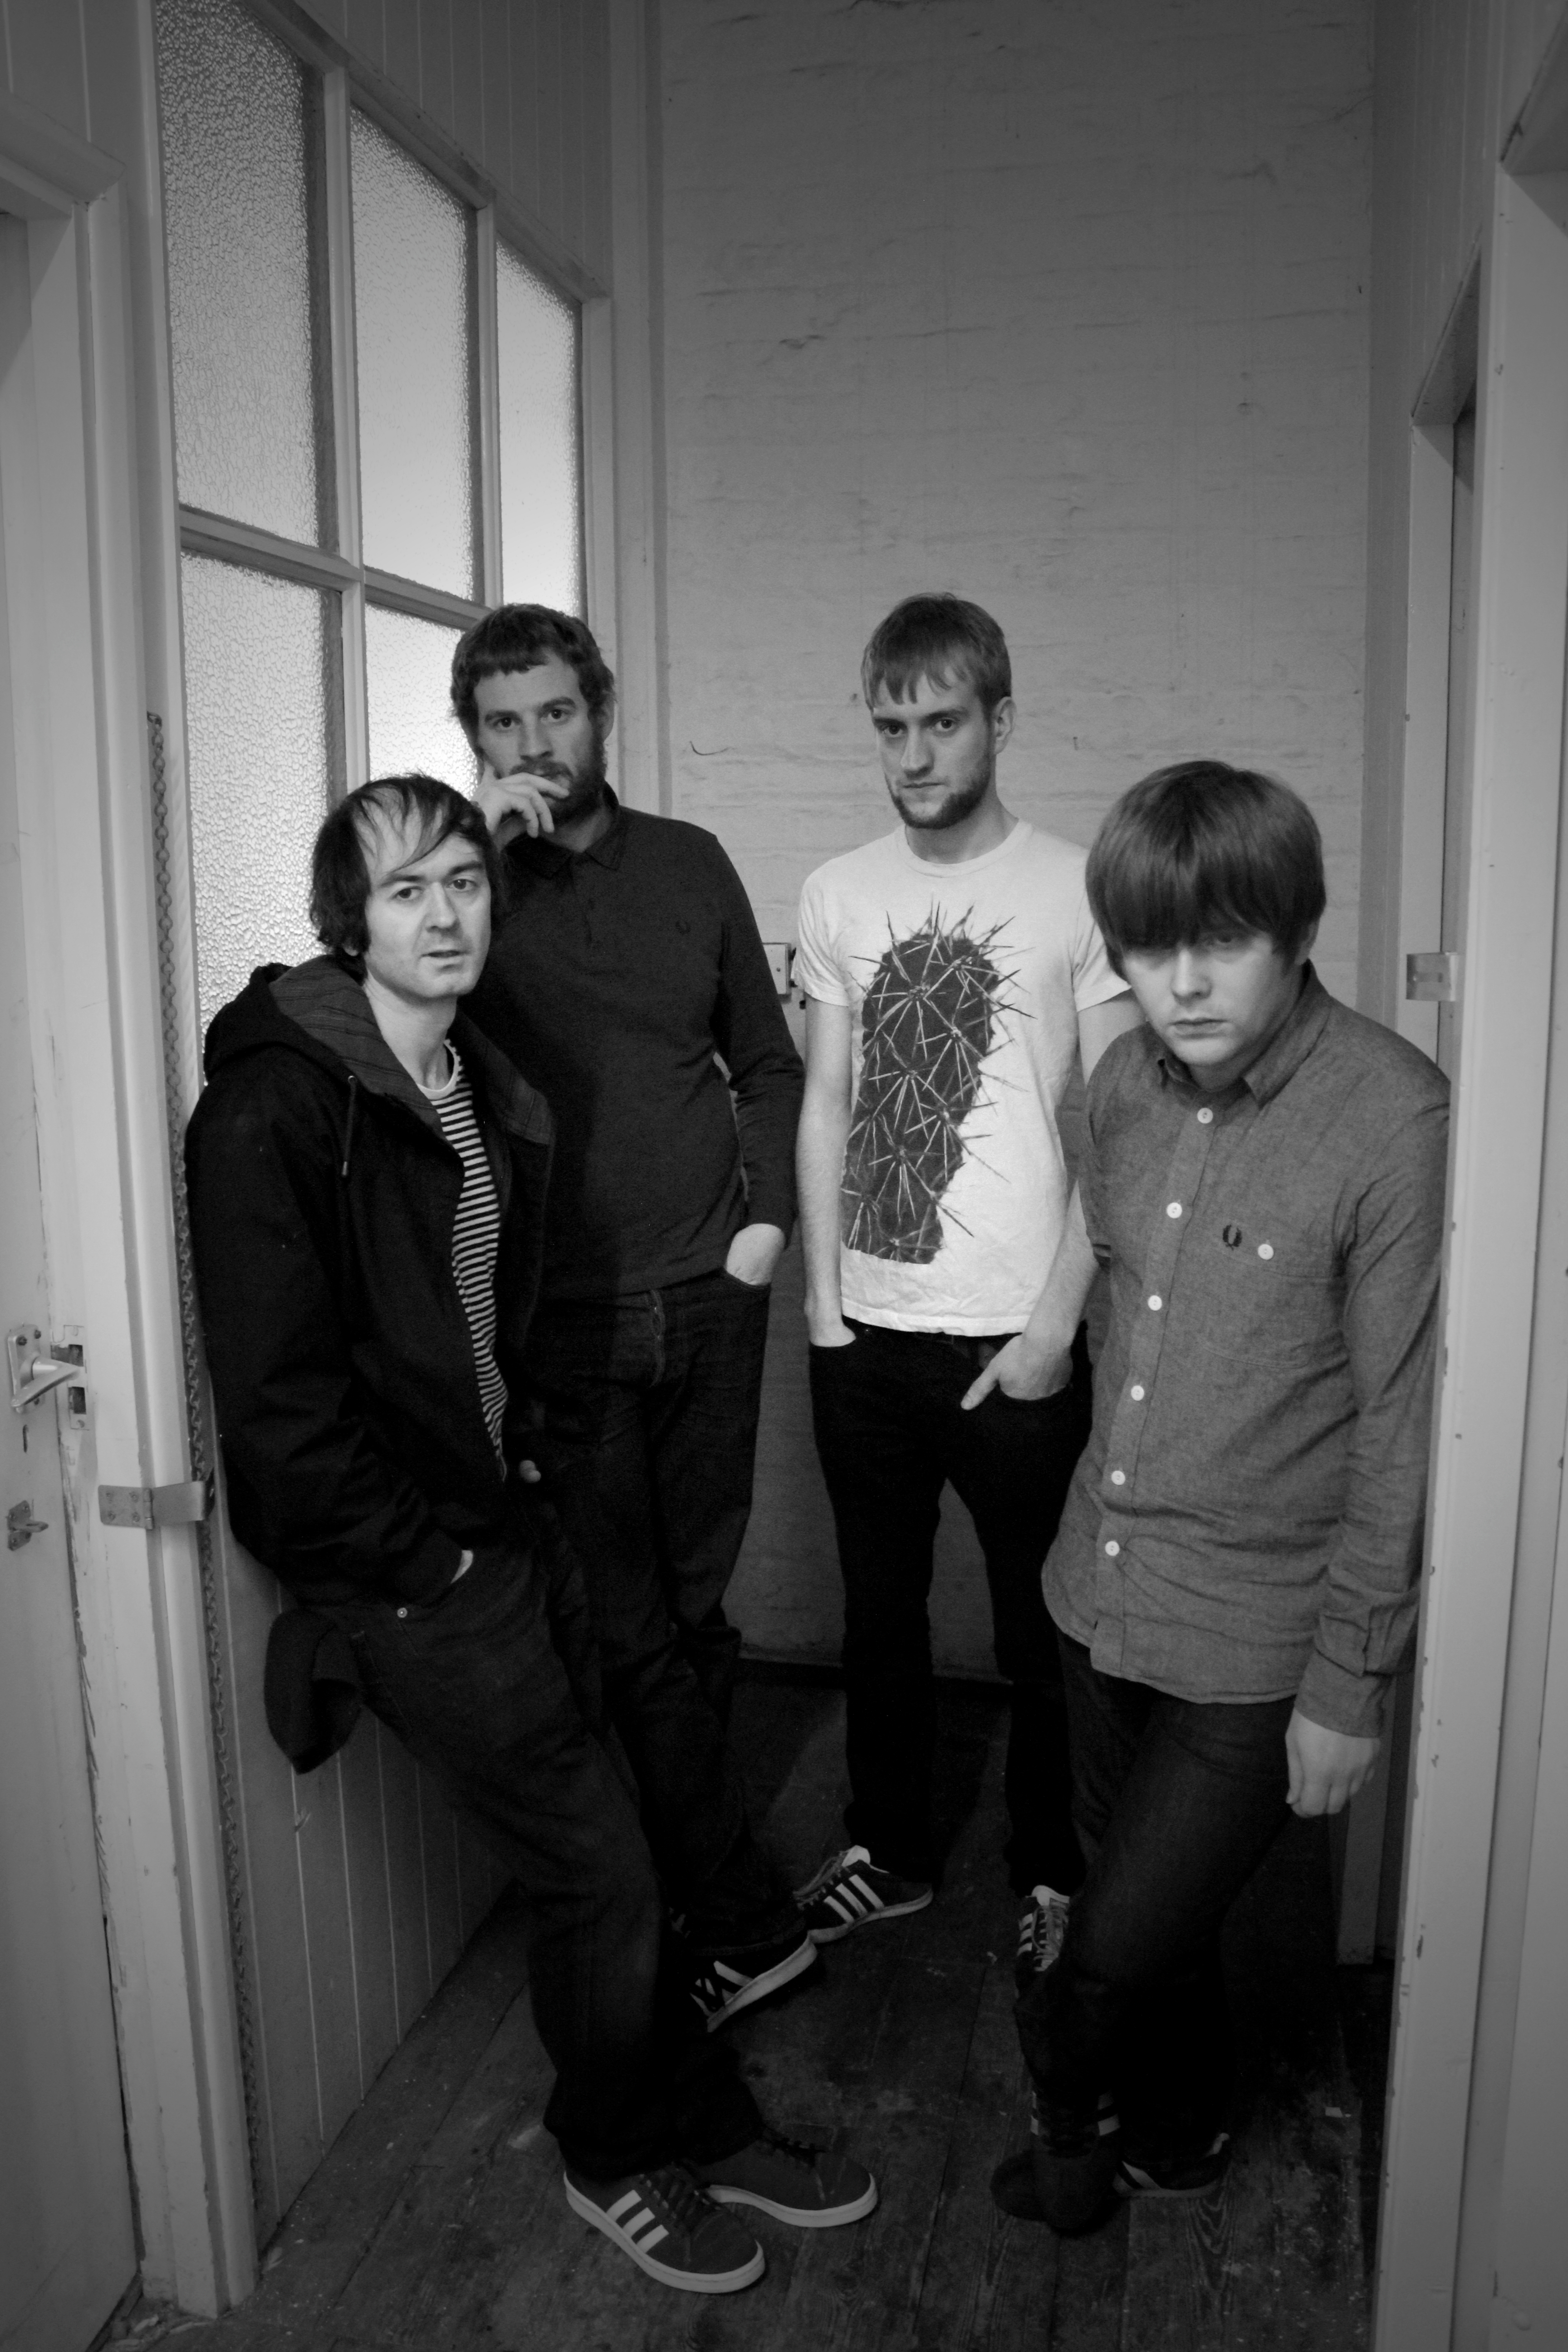 New To Us – The Lucid Dream – For The Rabbits